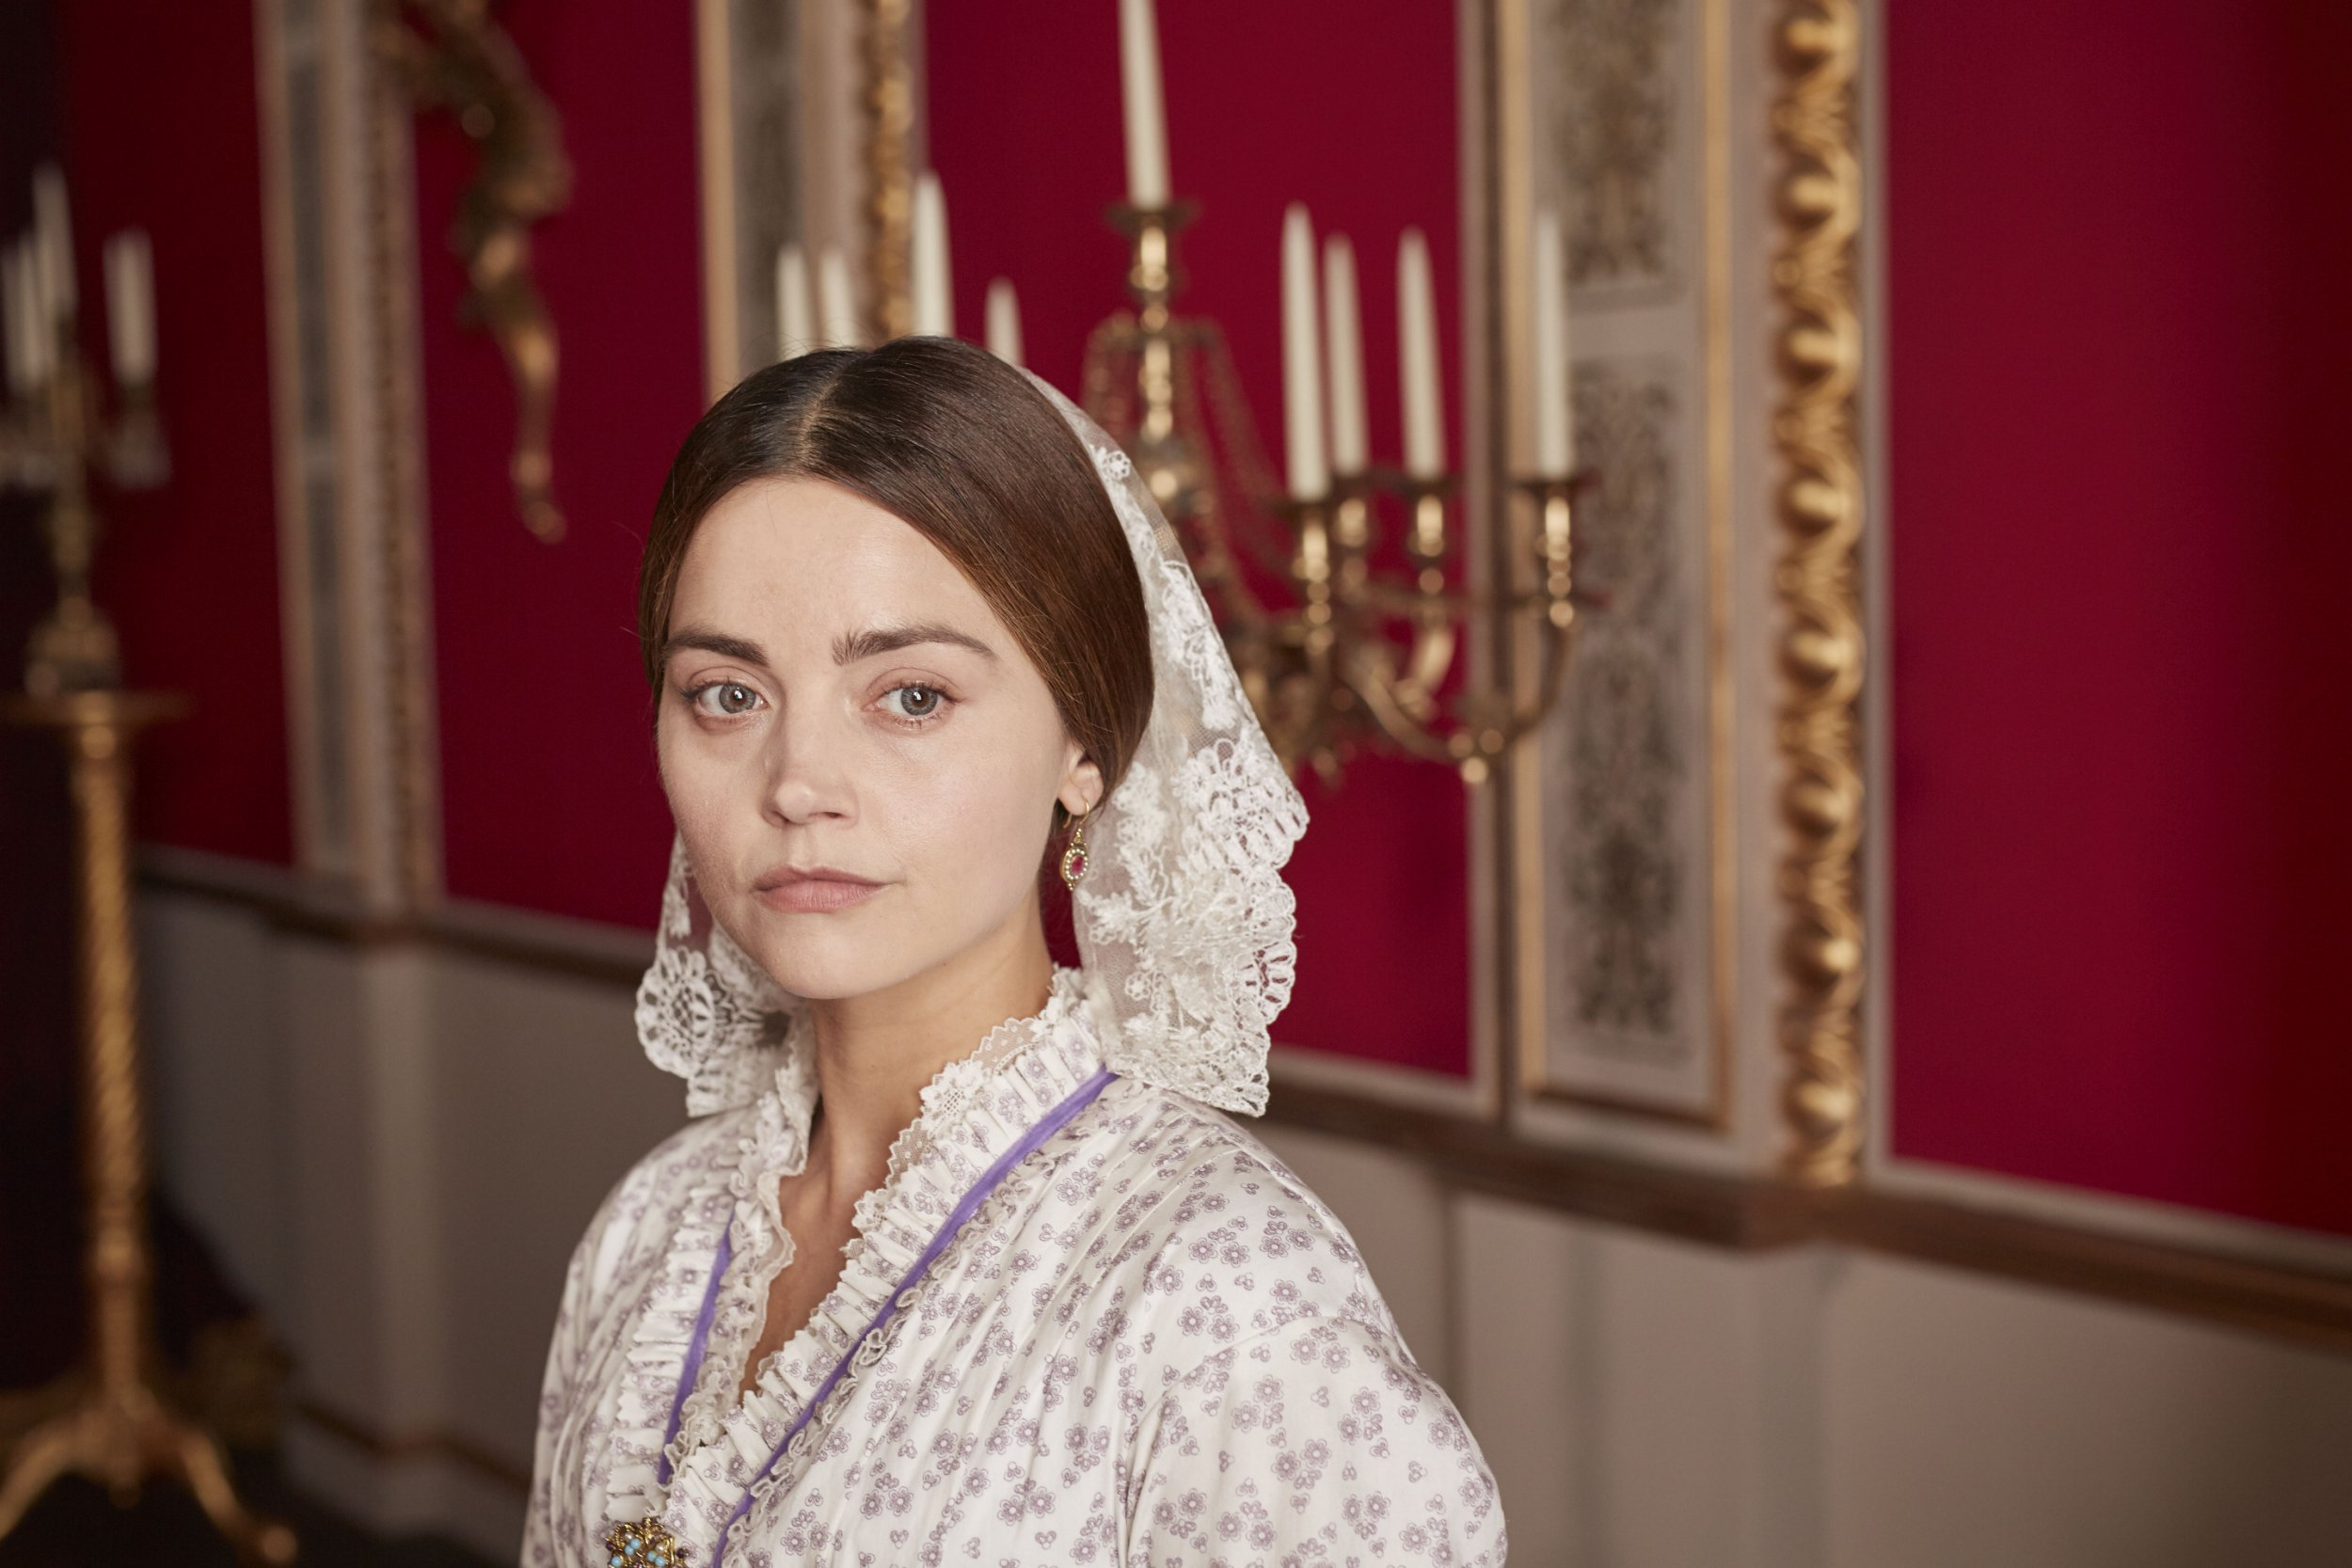 Victoria series 3 episode 5 review: Could Lord Palmerston's nontraditional marriage tempt Her Majesty to stray?